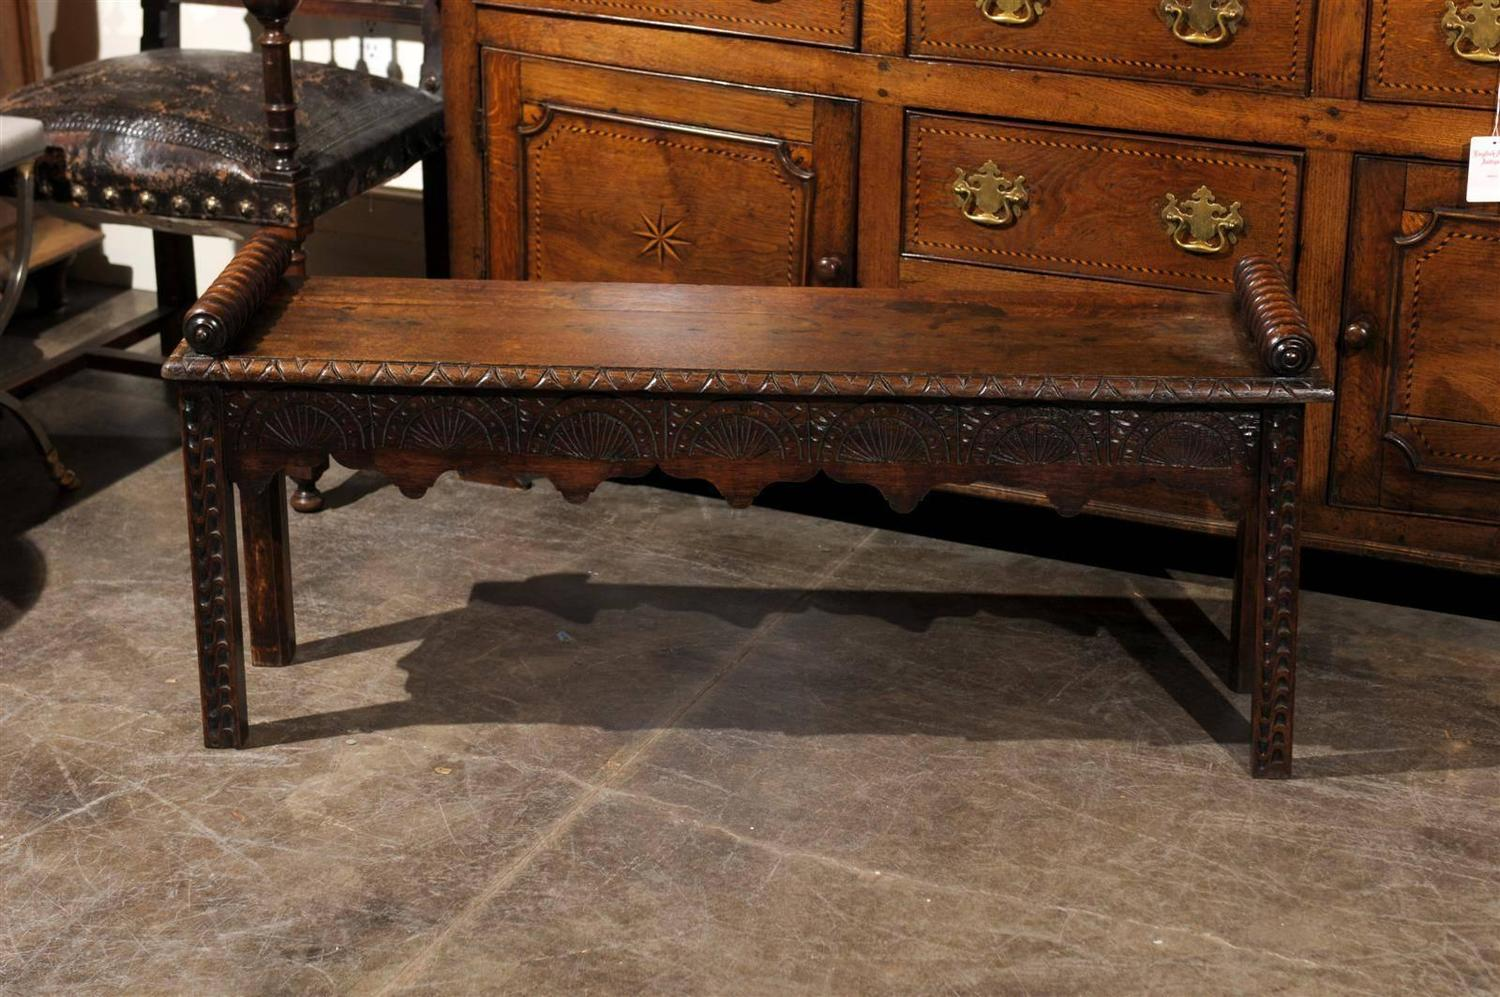 English oak carved bench for sale at stdibs